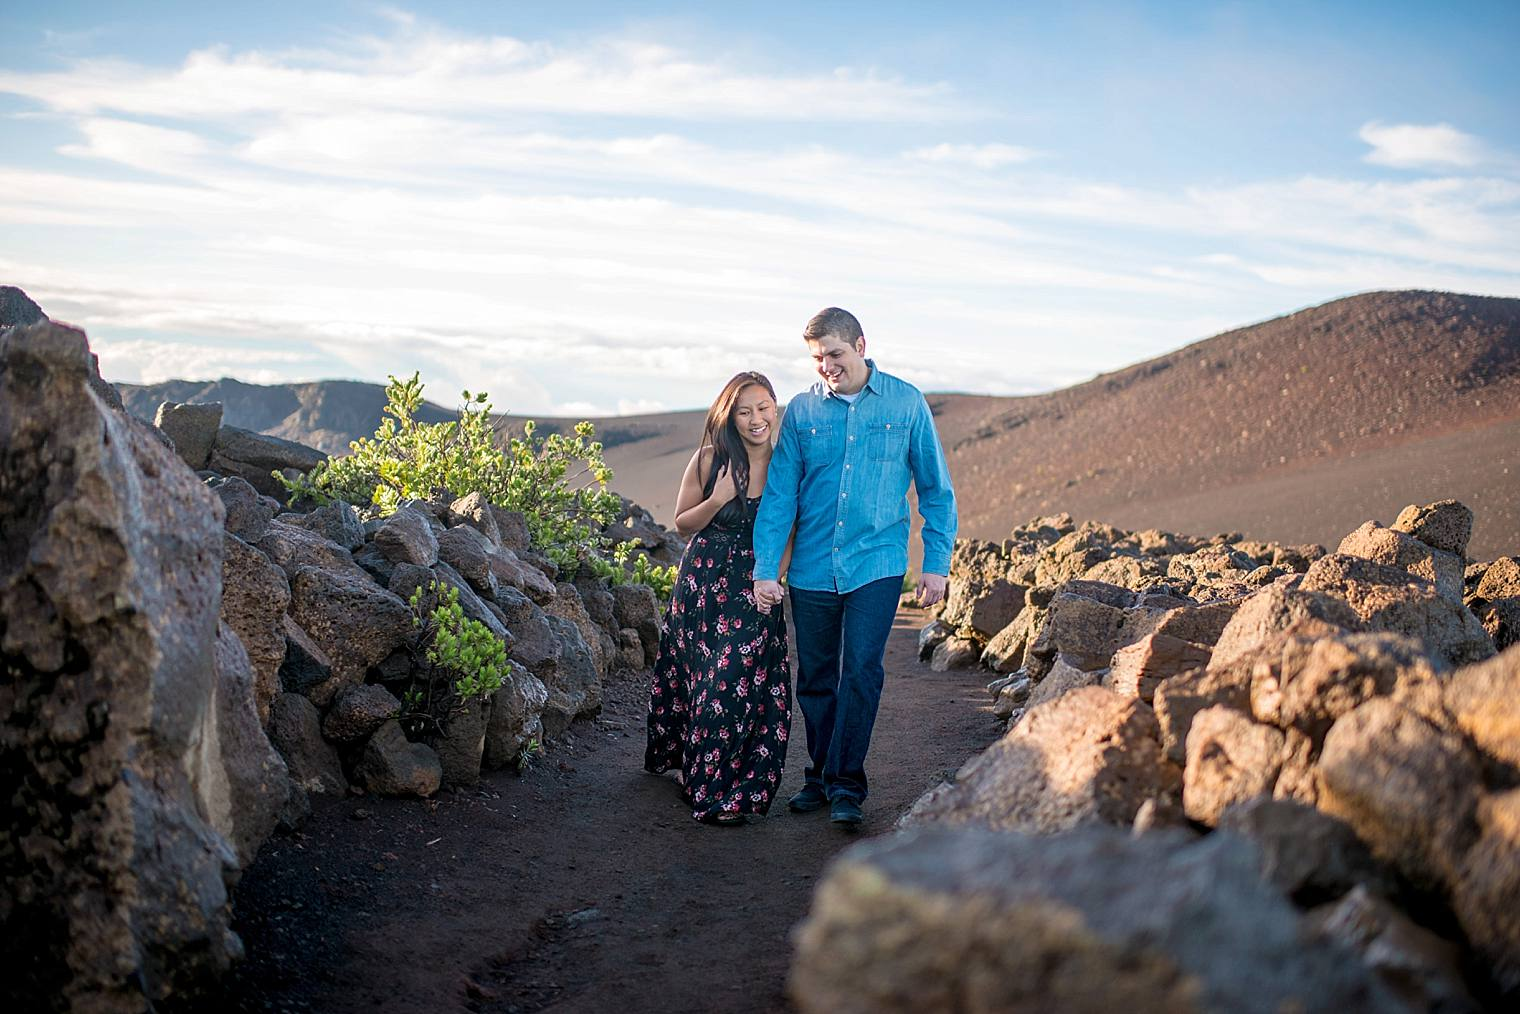 Amazing maui sunrise proposal pictures - Engaged on Maui_0013